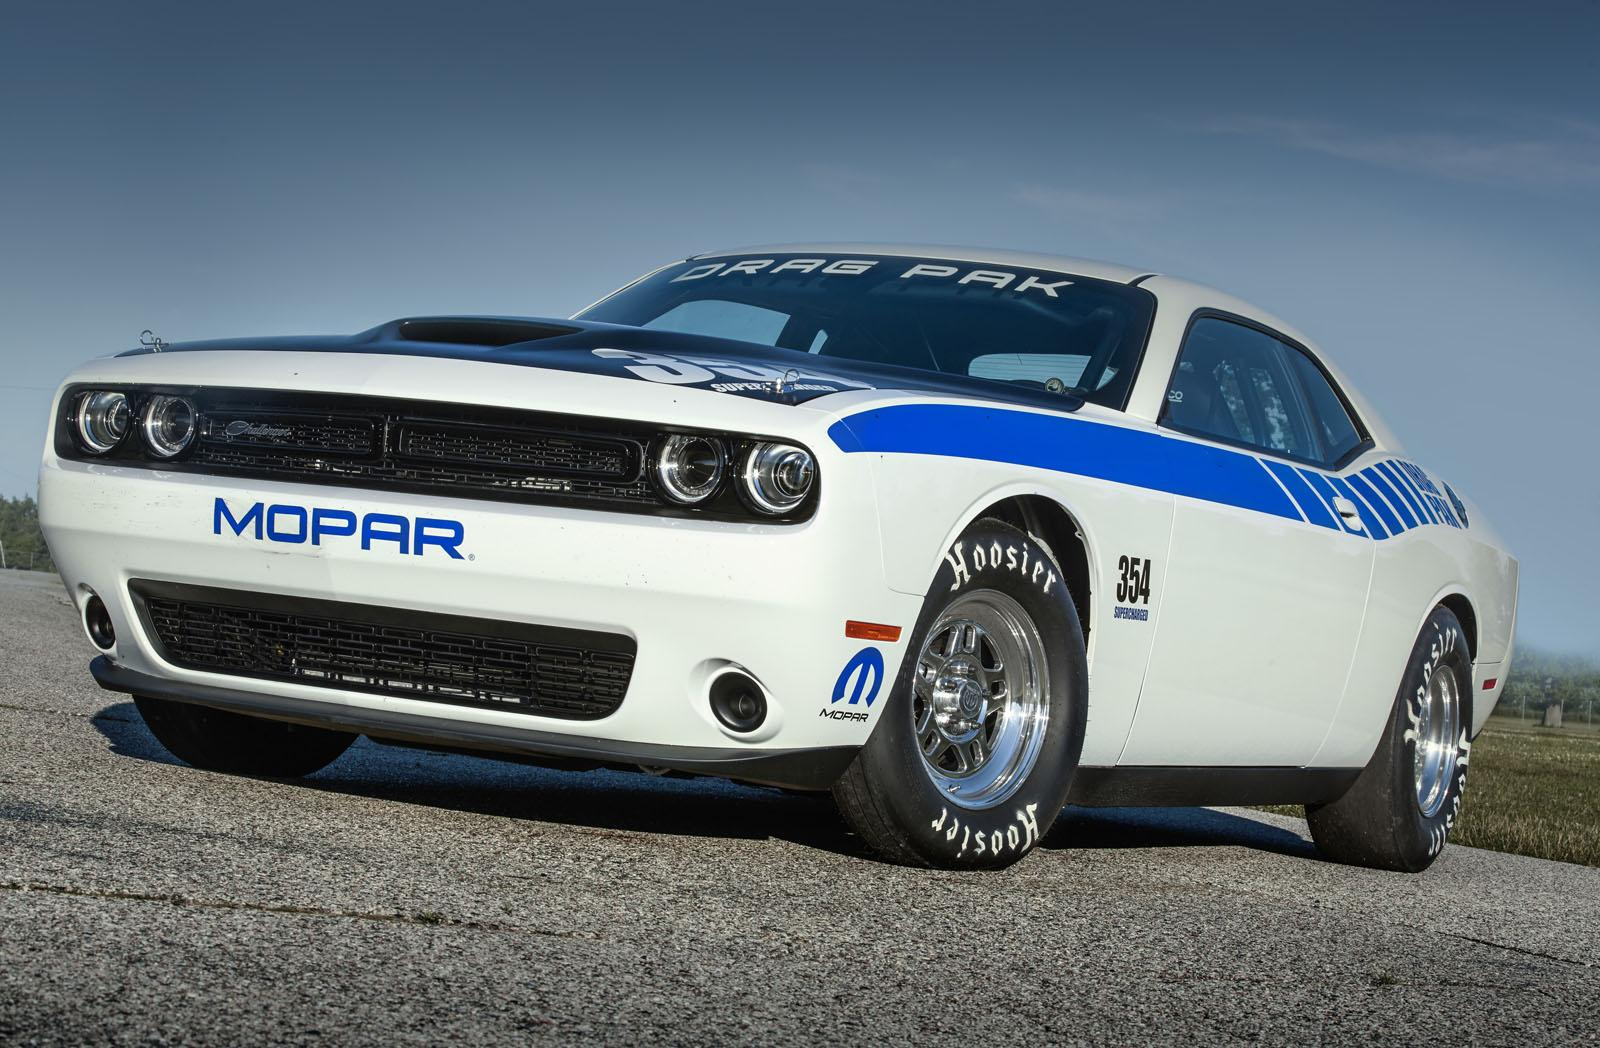 2019 Dodge Challenger Mopar Drag Pak Concept photo - 6